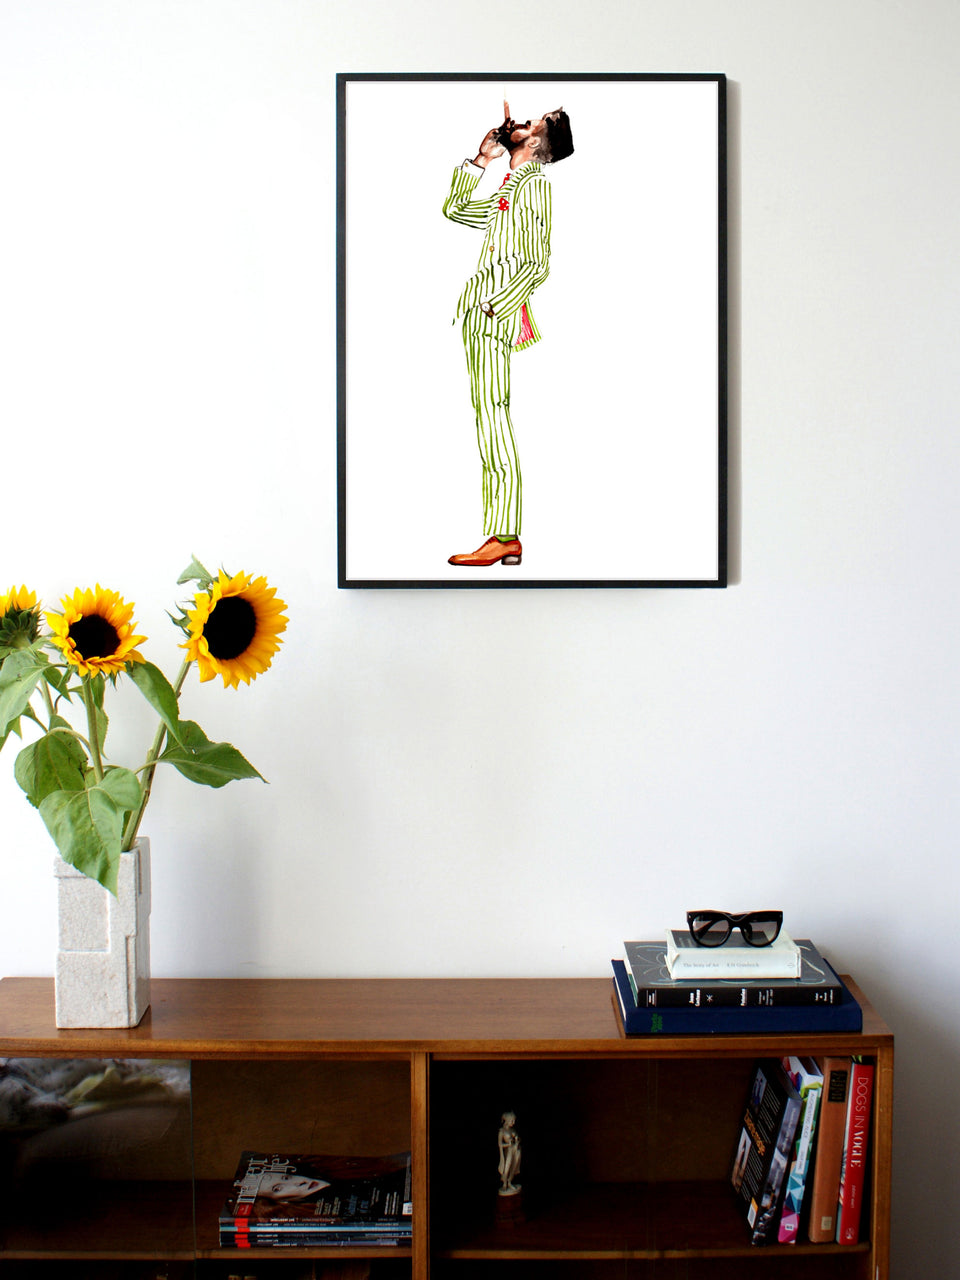 Fashion illustration print of Gentleman with Cigar by Sjoukje Bierma - man in striped suit smoking a cigar - 60 x 80 cm framed